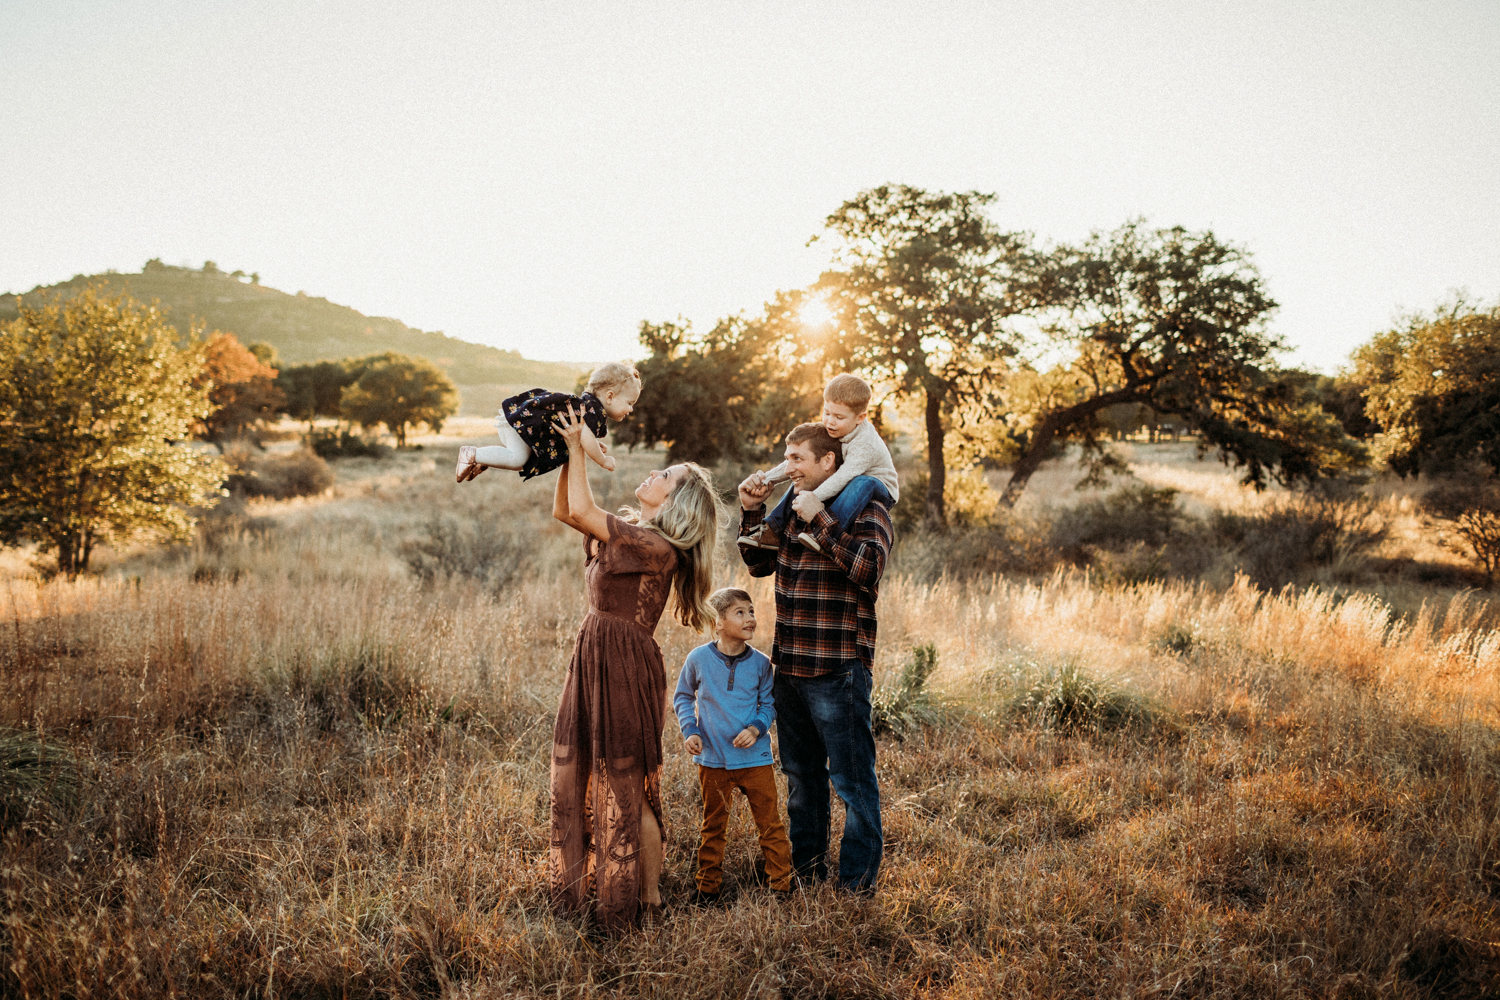 280_san antonio family lifestyle photographer.jpg